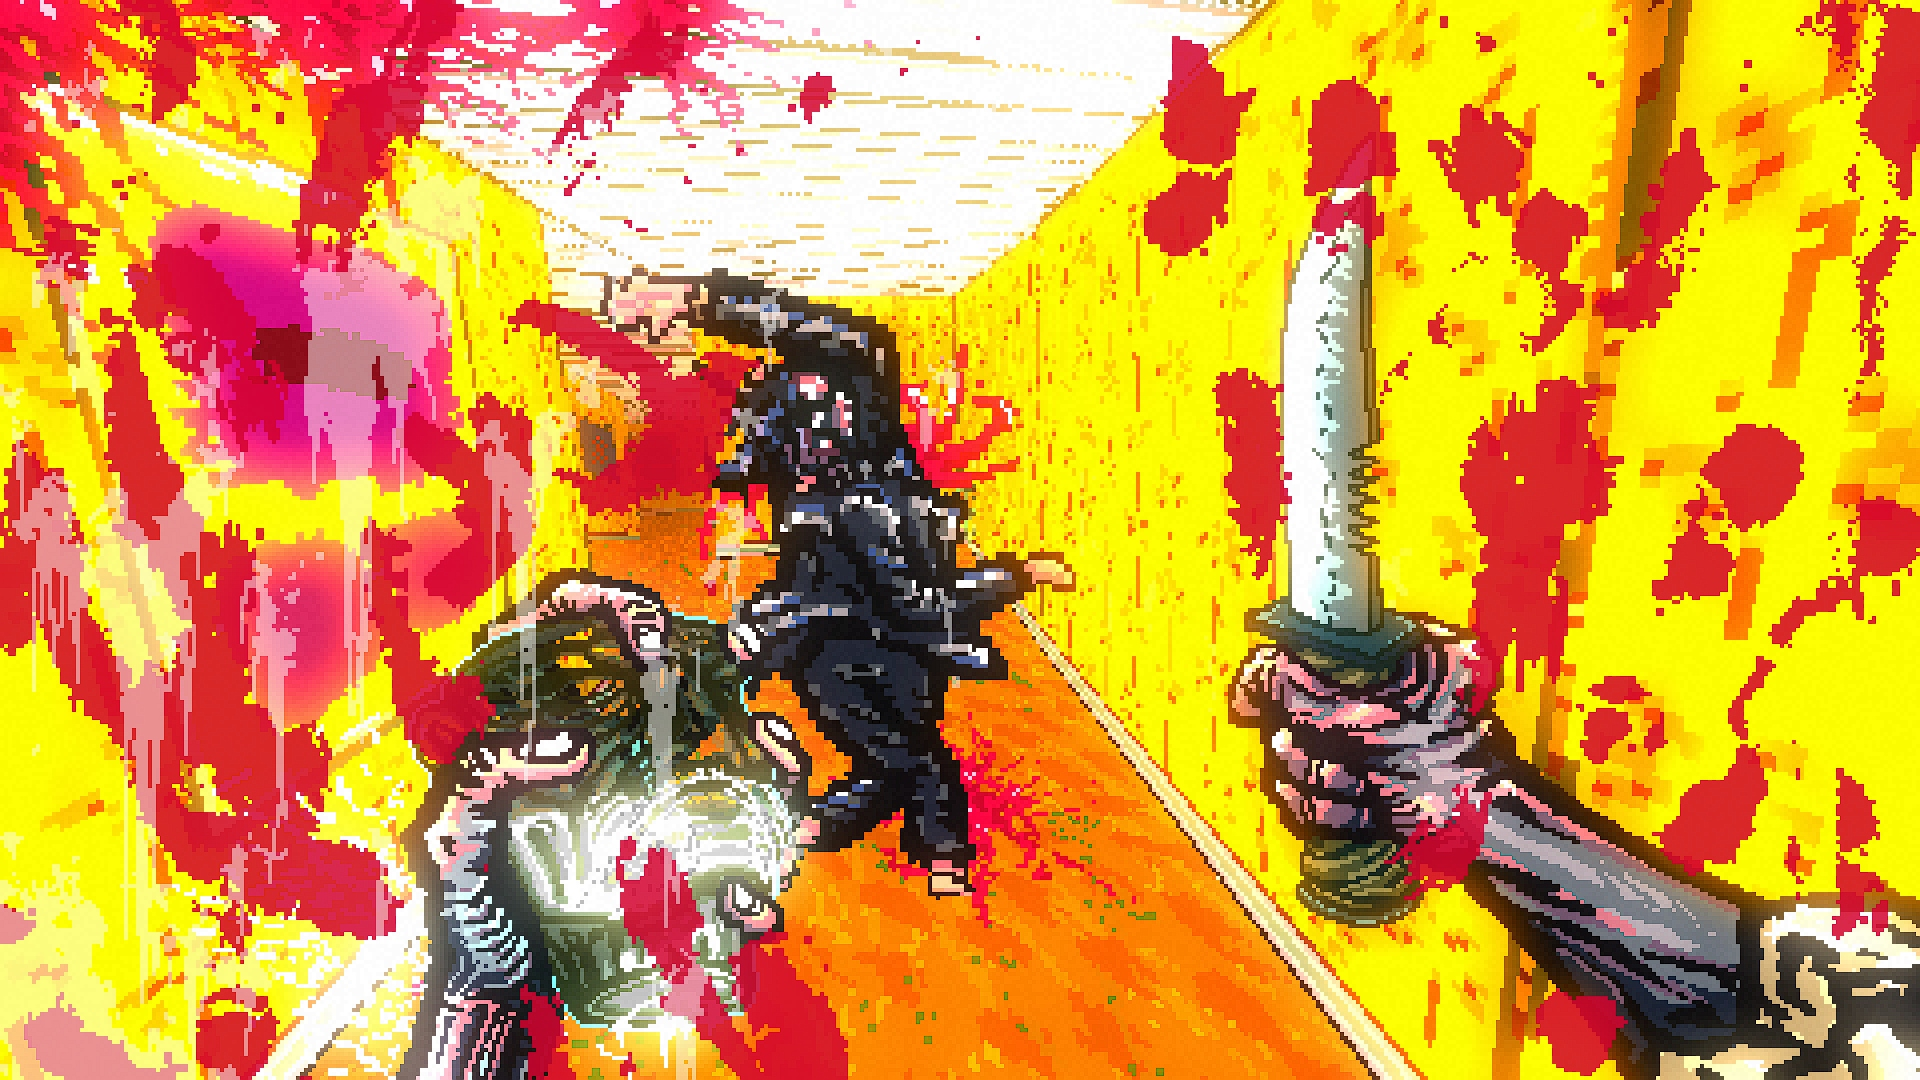 A first person view, the camera splattered with blood, a human-ish shape ahead spinning around, mortally wounded. In my right kand is a large knife.